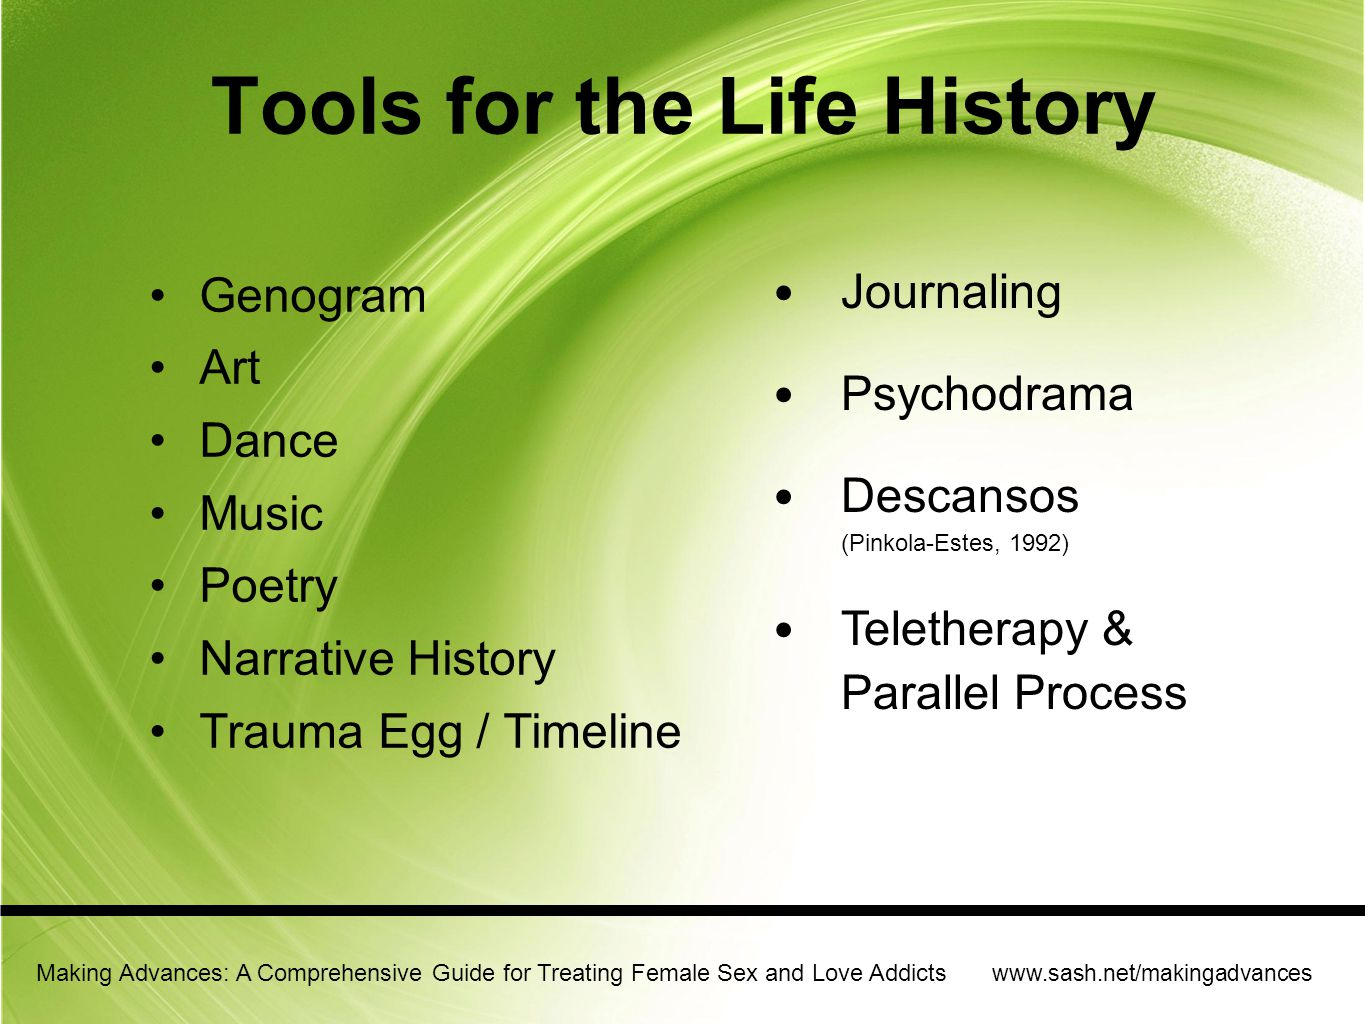 Tools for the Life History